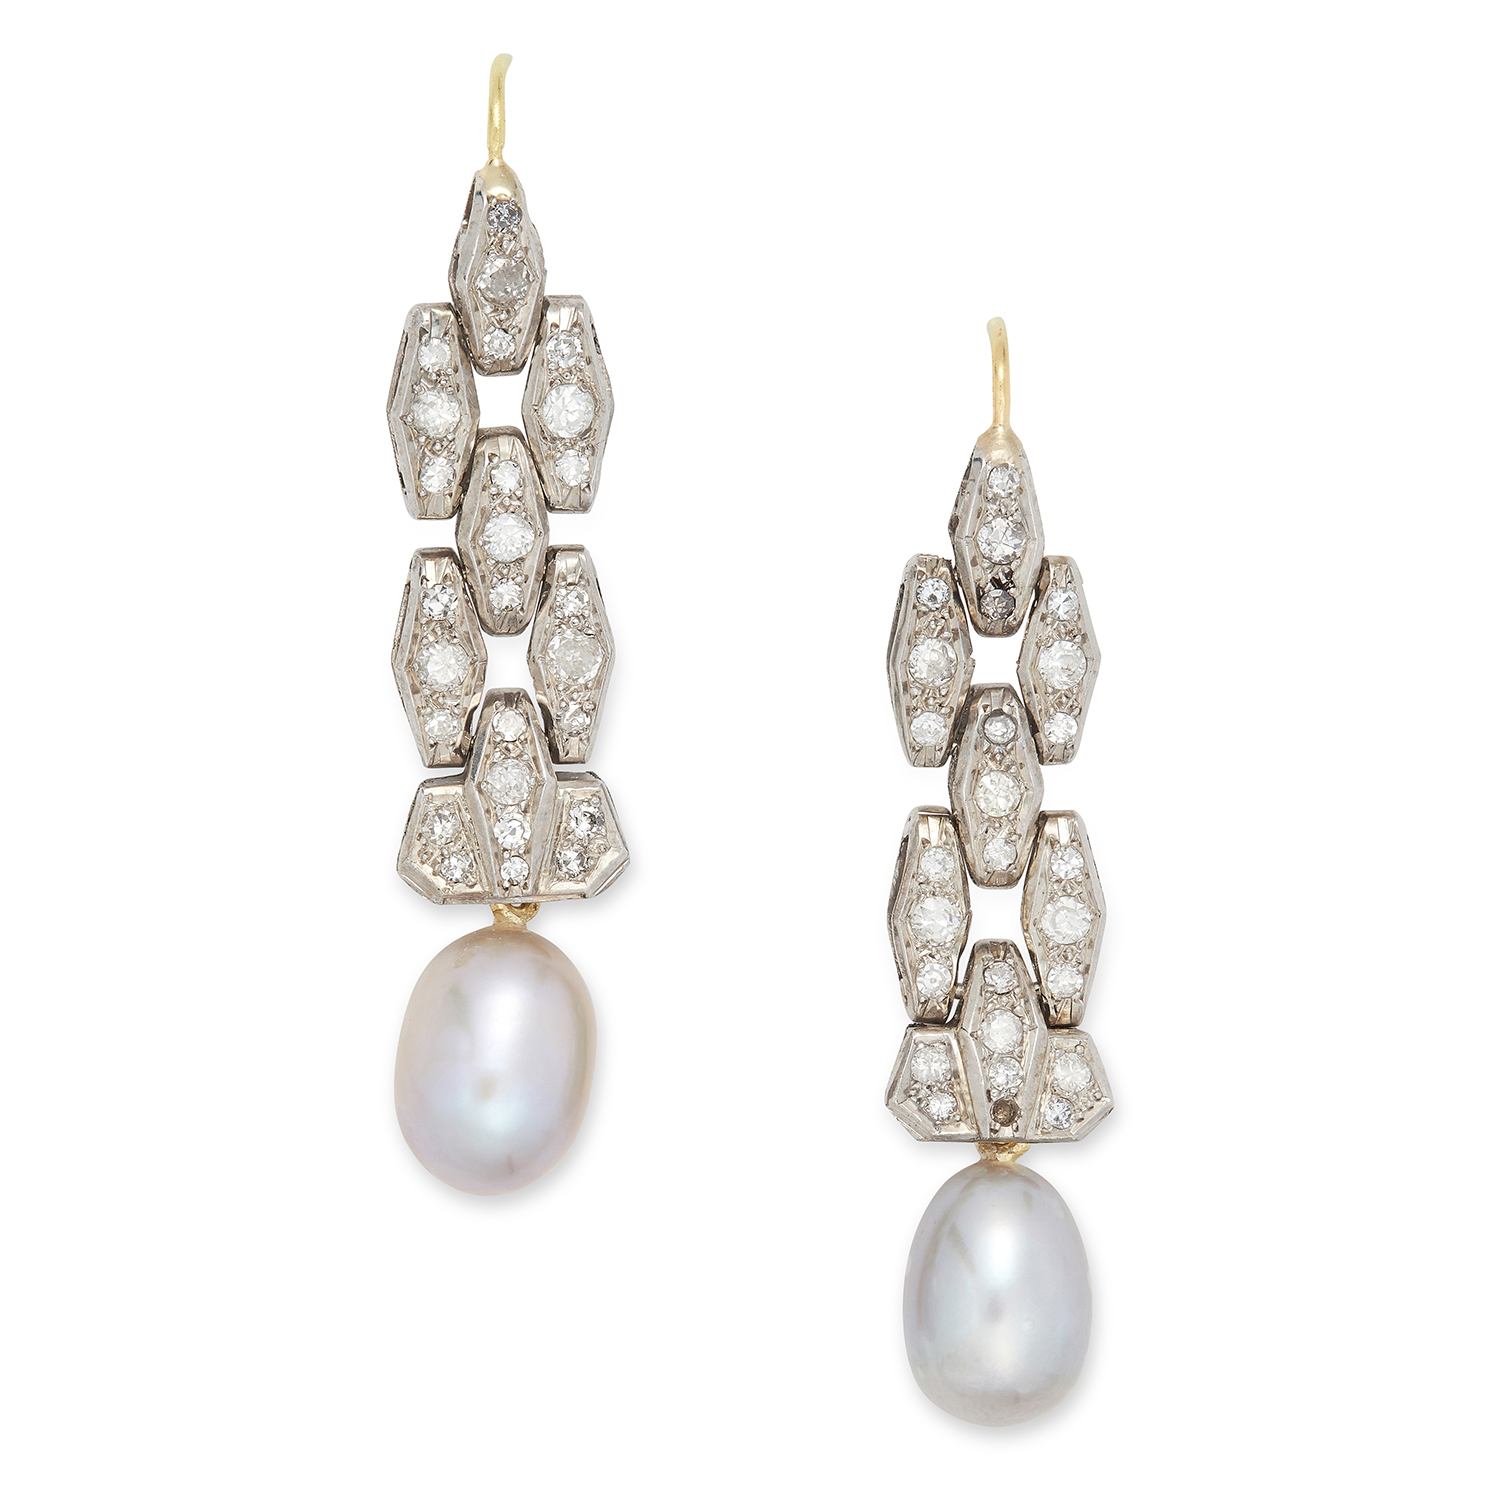 Los 3 - DIAMOND AND PEARL EARRINGS in Art Deco design, each set with round cut diamonds, suspending a pearl